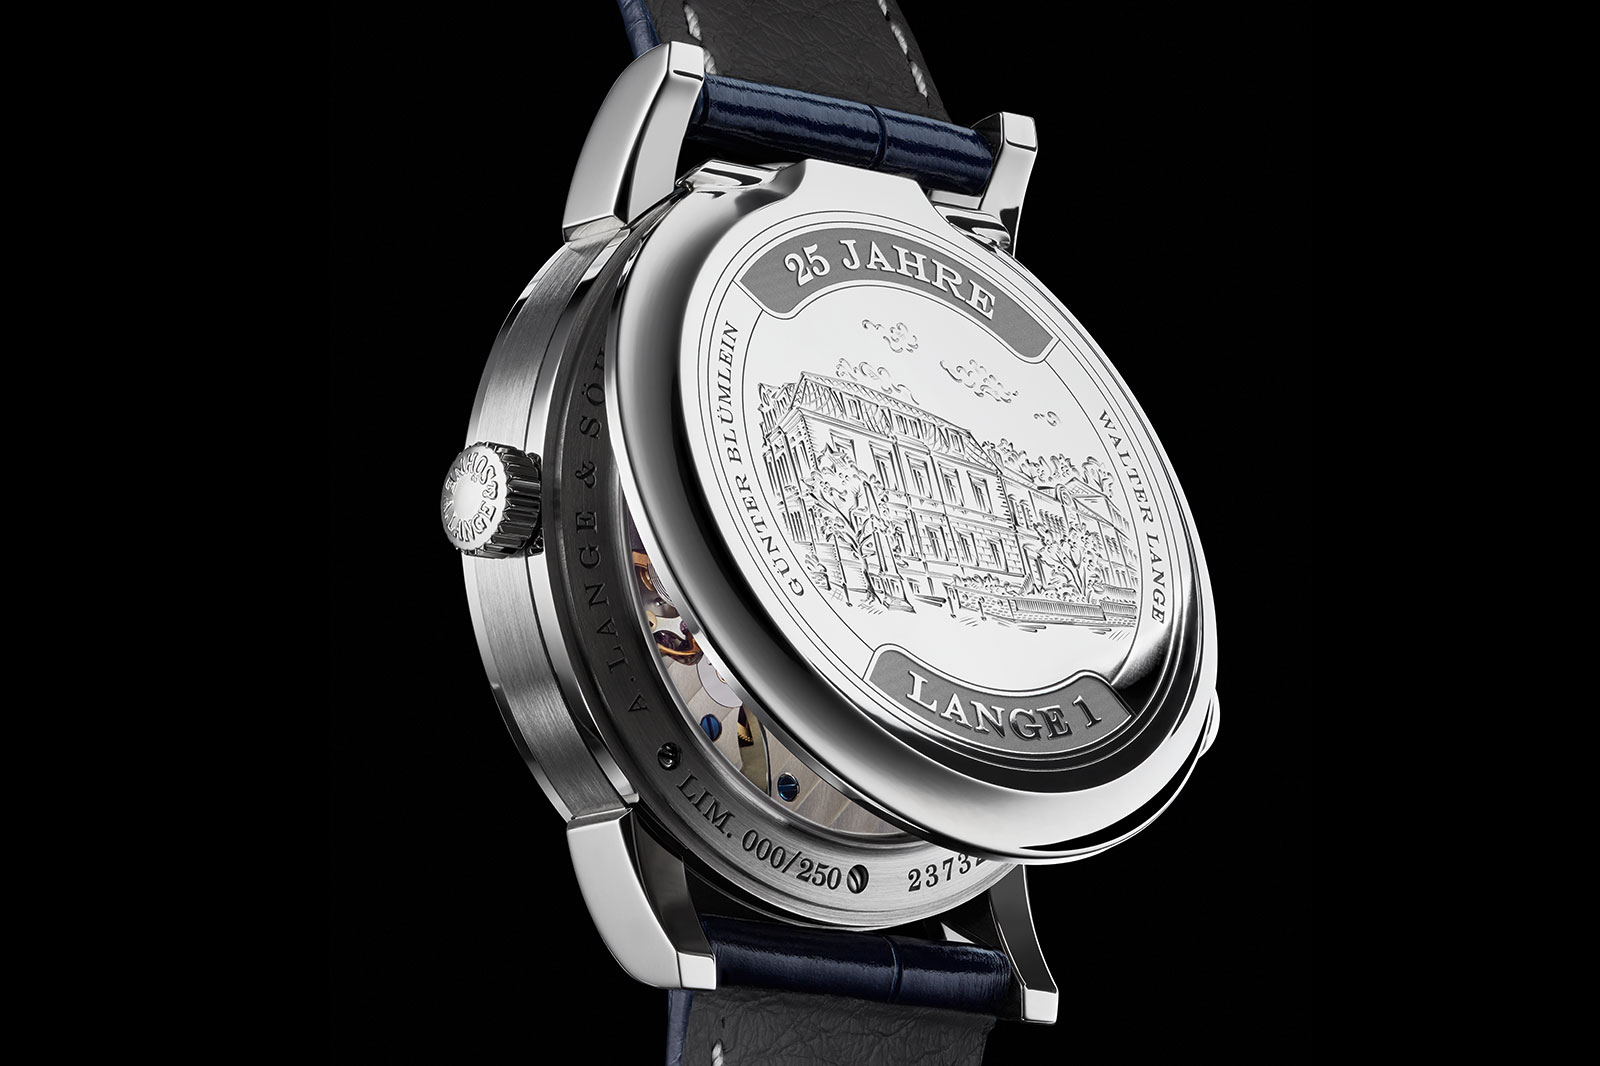 Lange-1-25th-Anniversary-watch-8